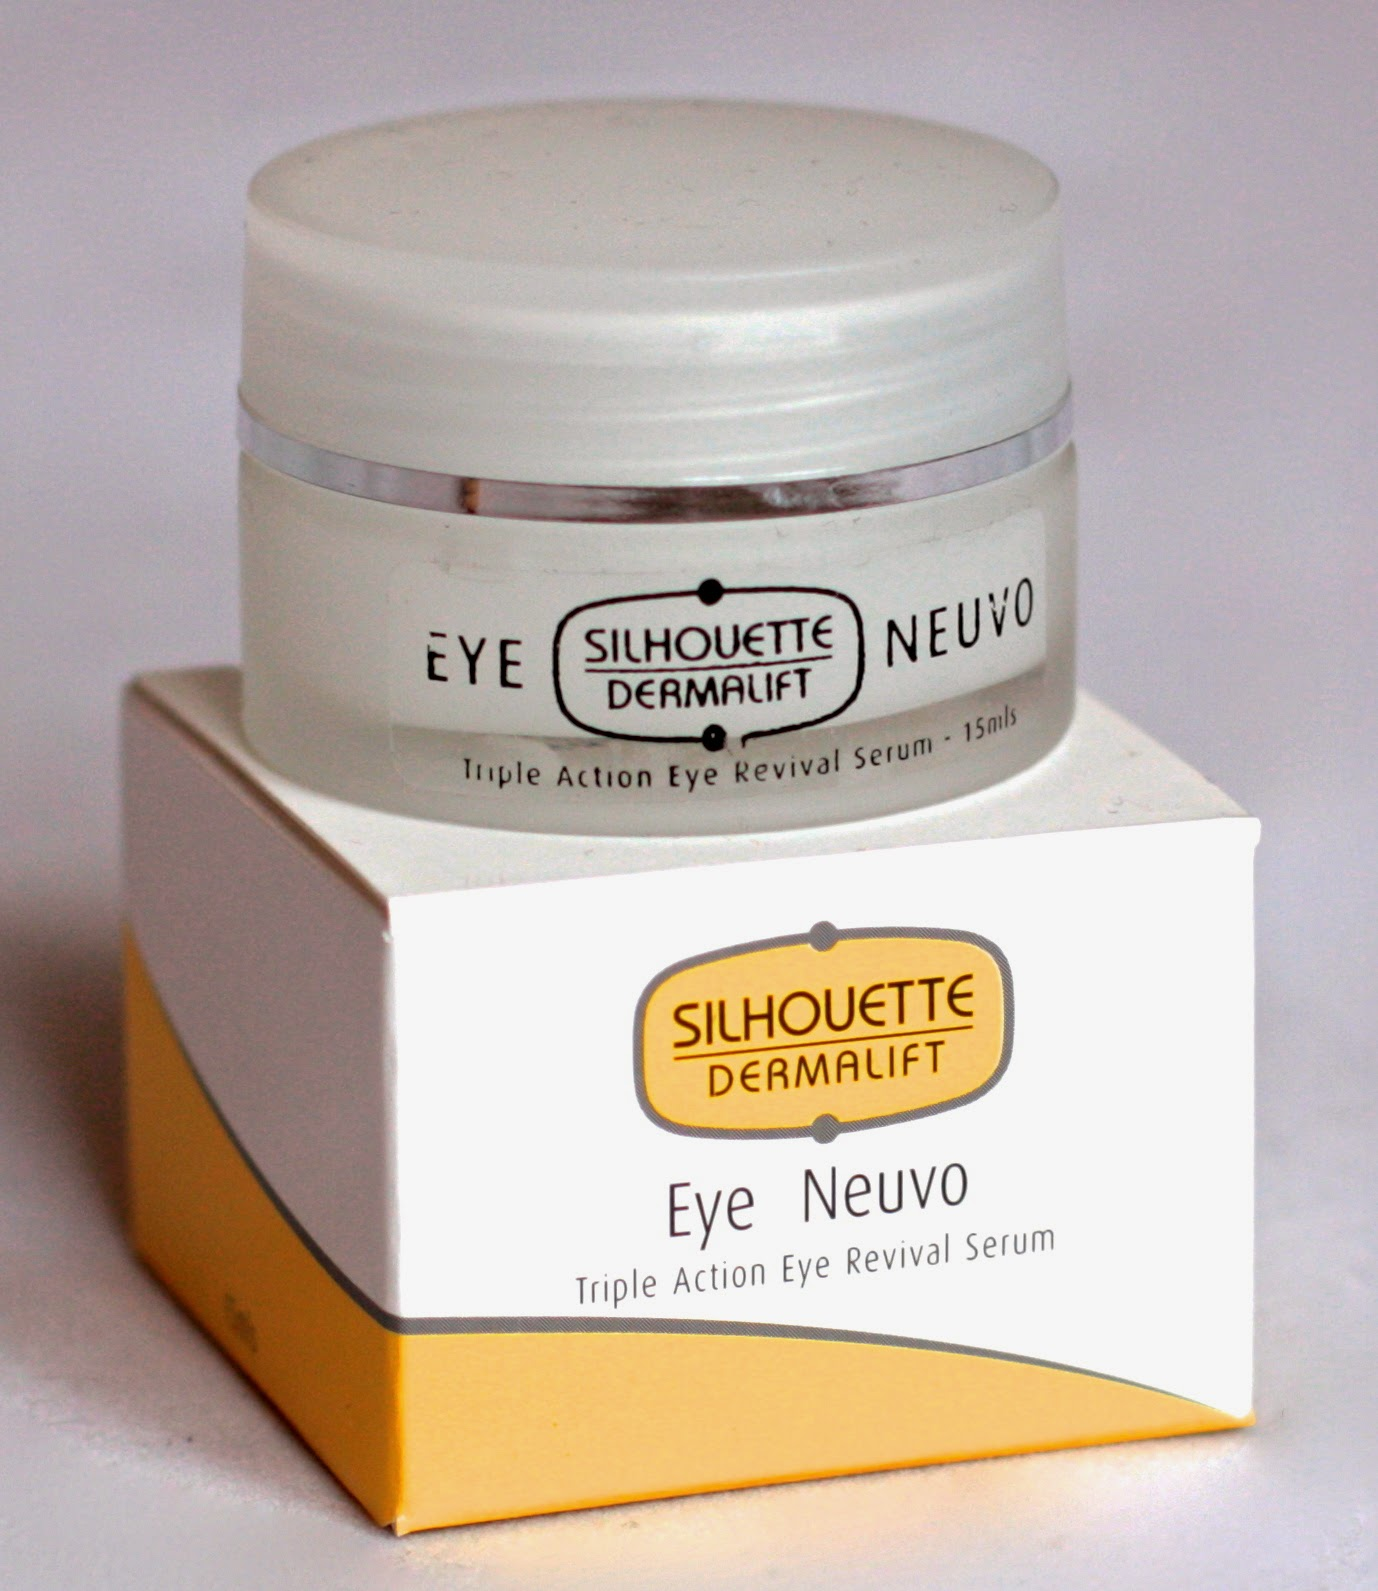 Silhouette Dermalift Eye Neuvo Triple Action Eye Revival Cream